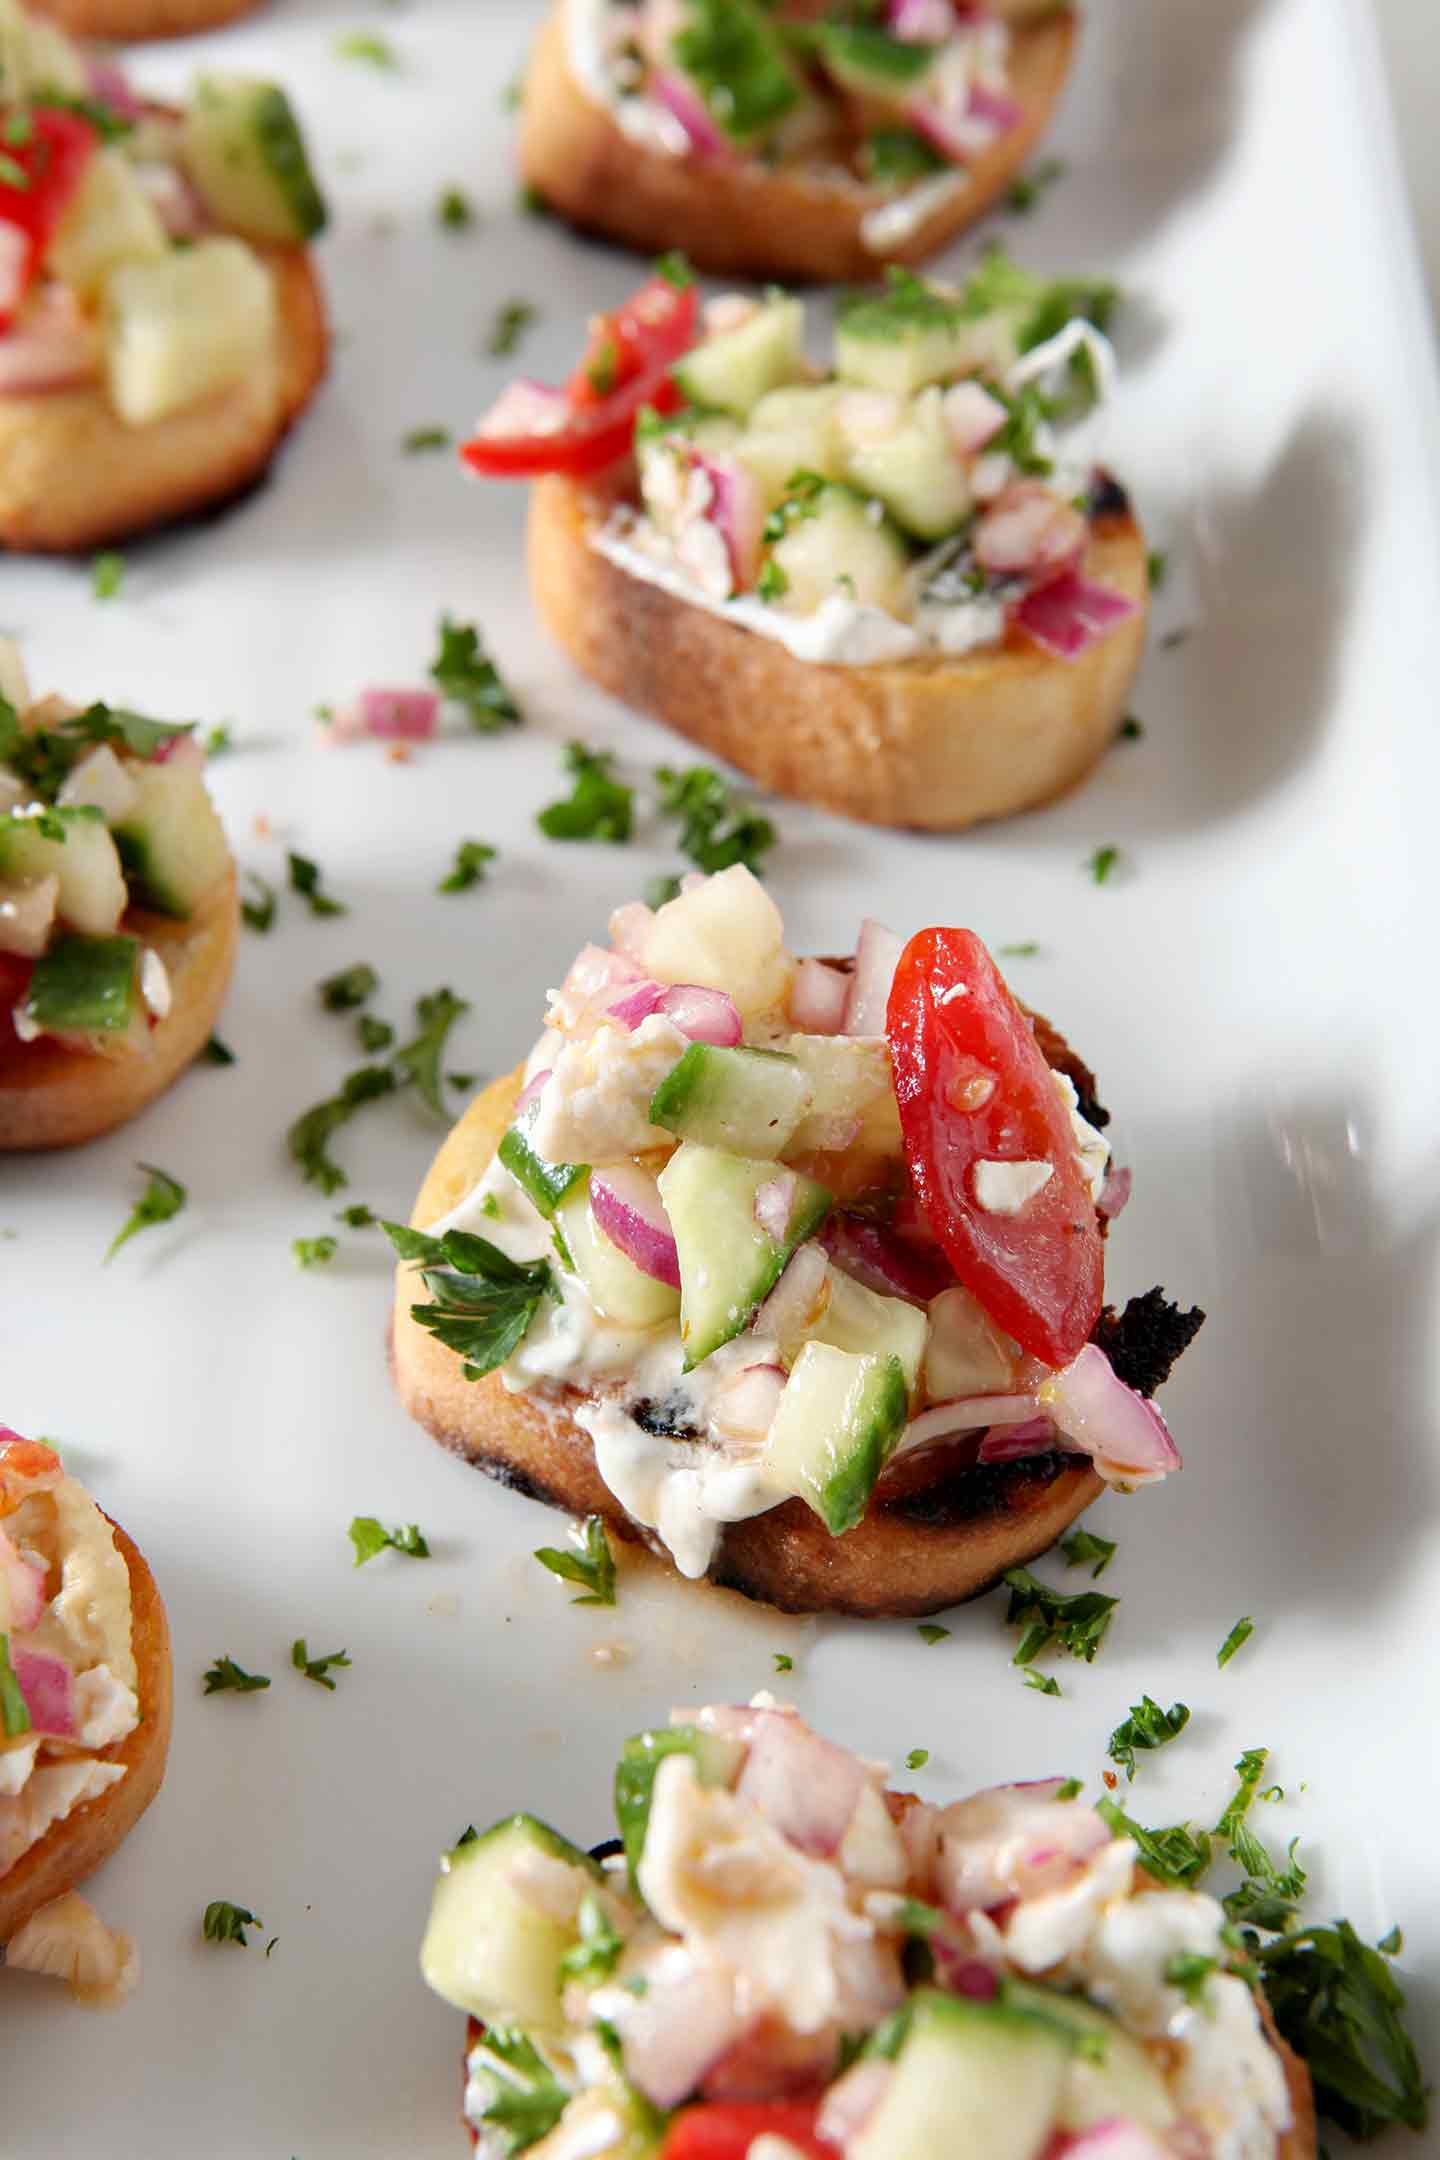 A close up image of the final Greek Bruschetta, garnished with parsley and served on a white platter